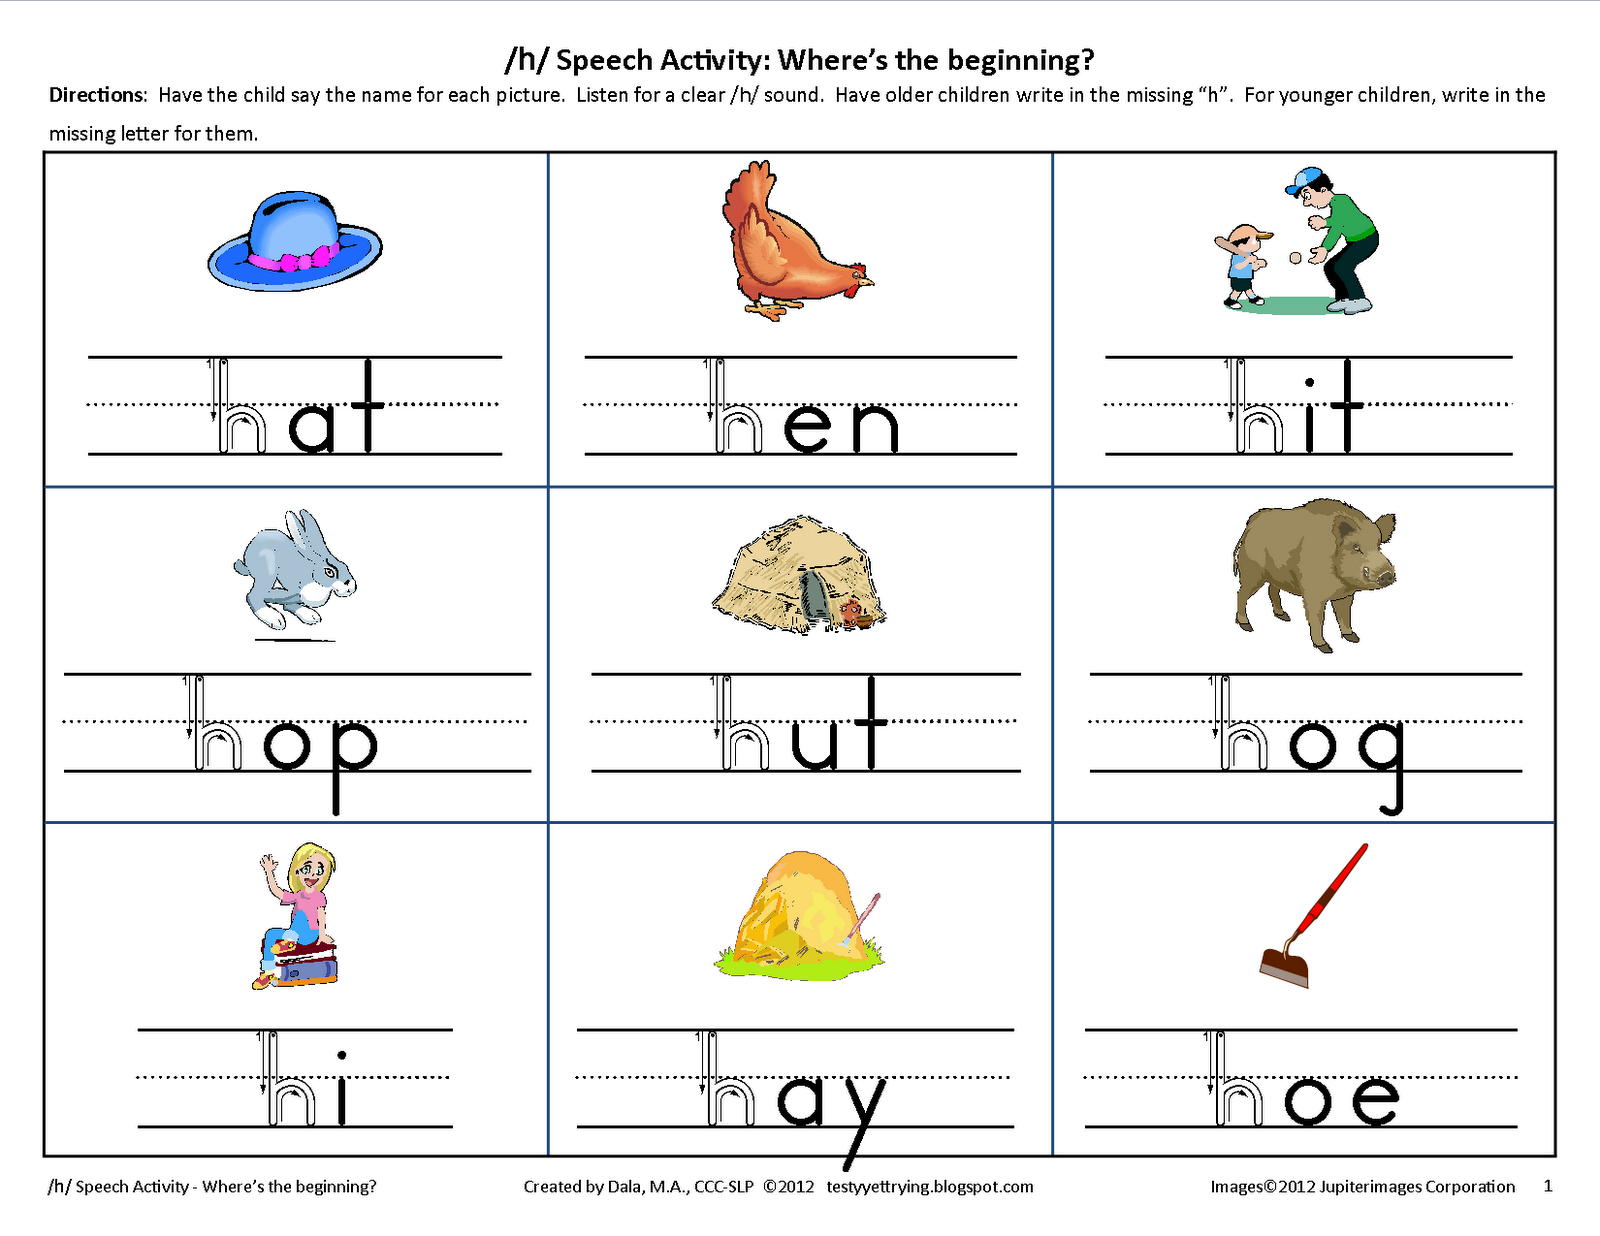 Weirdmailus  Unique Testy Yet Trying Initial H Speech Worksheet With Excellent Make Classroom Teachers Happy Reinforce Phonics And Handwriting And Practice Speech All At The Same Time With Breathtaking Middle School Band Worksheets Also Hard C And Soft C Worksheets In Addition Math In English Worksheets And Salamander Math Worksheets As Well As Pre K Spanish Worksheets Additionally Freedom Writers Movie Worksheet From Testyyettryingblogspotcom With Weirdmailus  Excellent Testy Yet Trying Initial H Speech Worksheet With Breathtaking Make Classroom Teachers Happy Reinforce Phonics And Handwriting And Practice Speech All At The Same Time And Unique Middle School Band Worksheets Also Hard C And Soft C Worksheets In Addition Math In English Worksheets From Testyyettryingblogspotcom